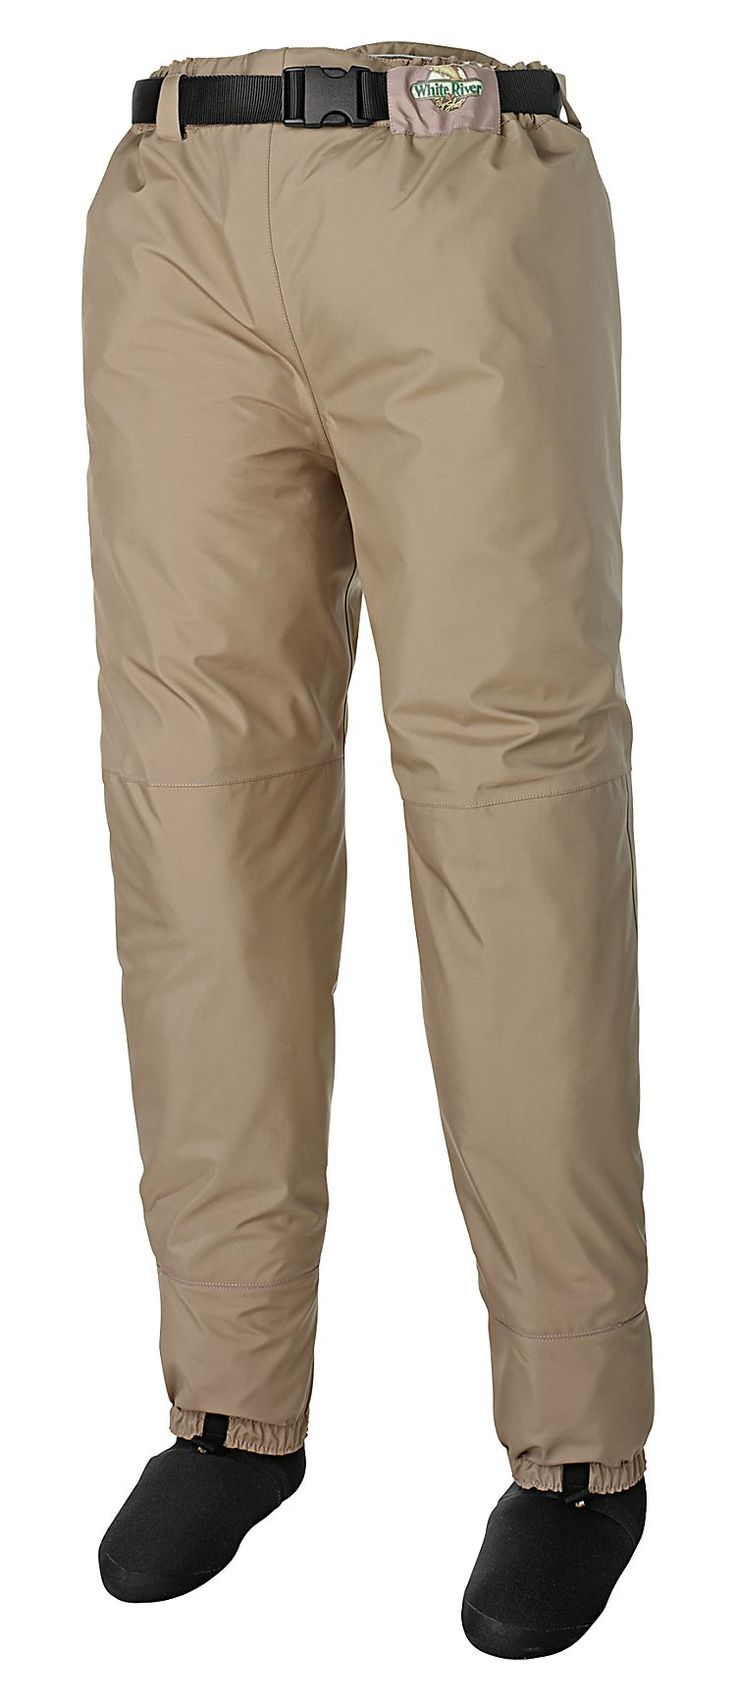 13 best images about fly fishing on pinterest shirts for for Fly fishing pants